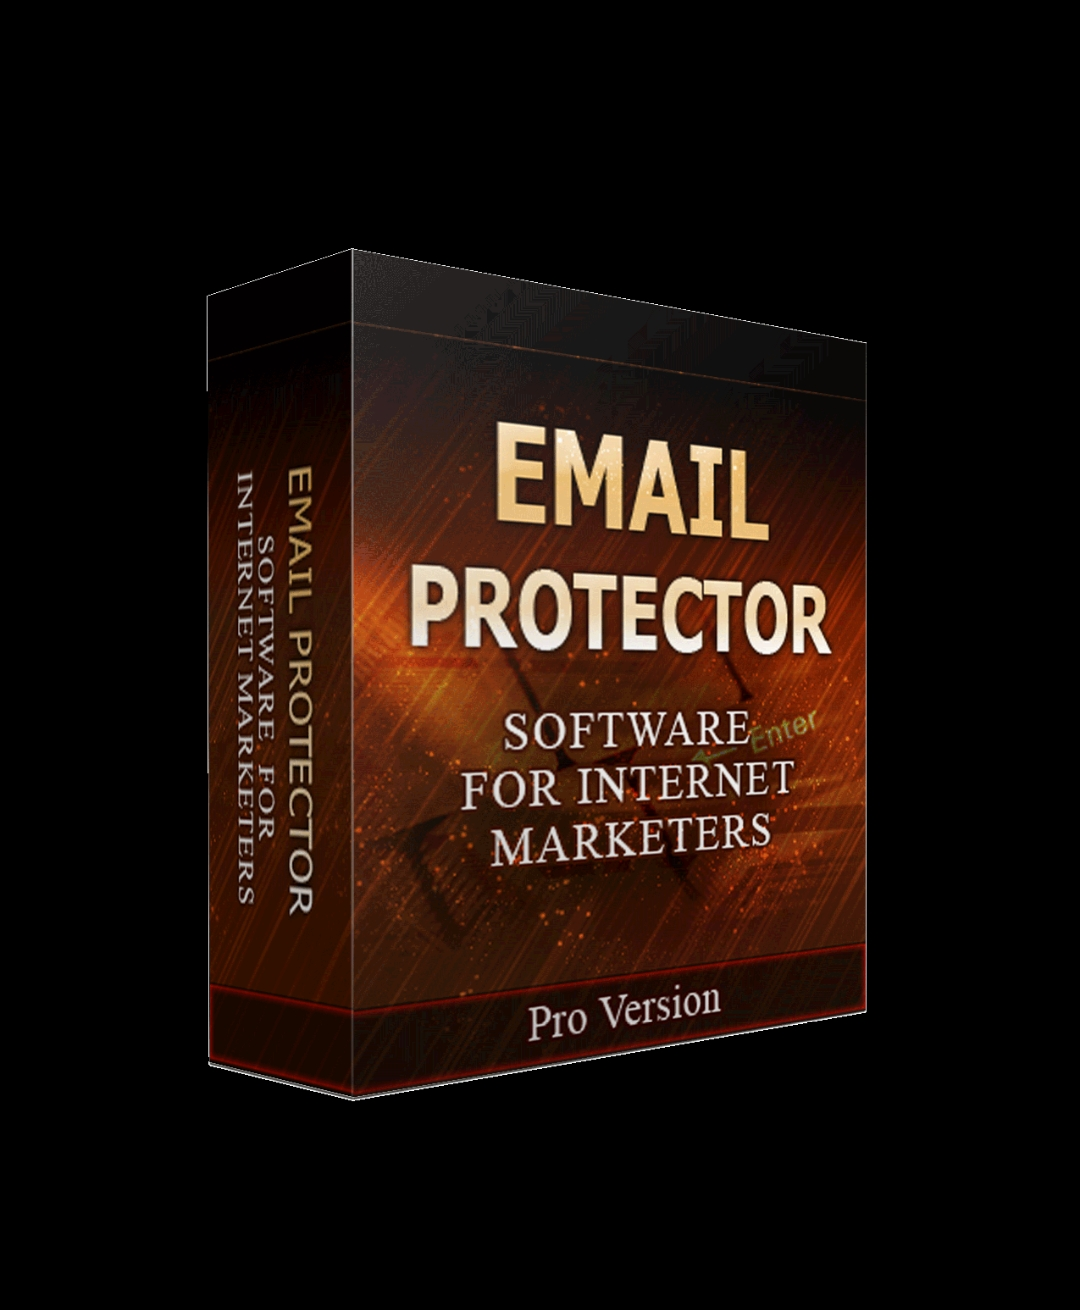 Email protector software for internet marketers